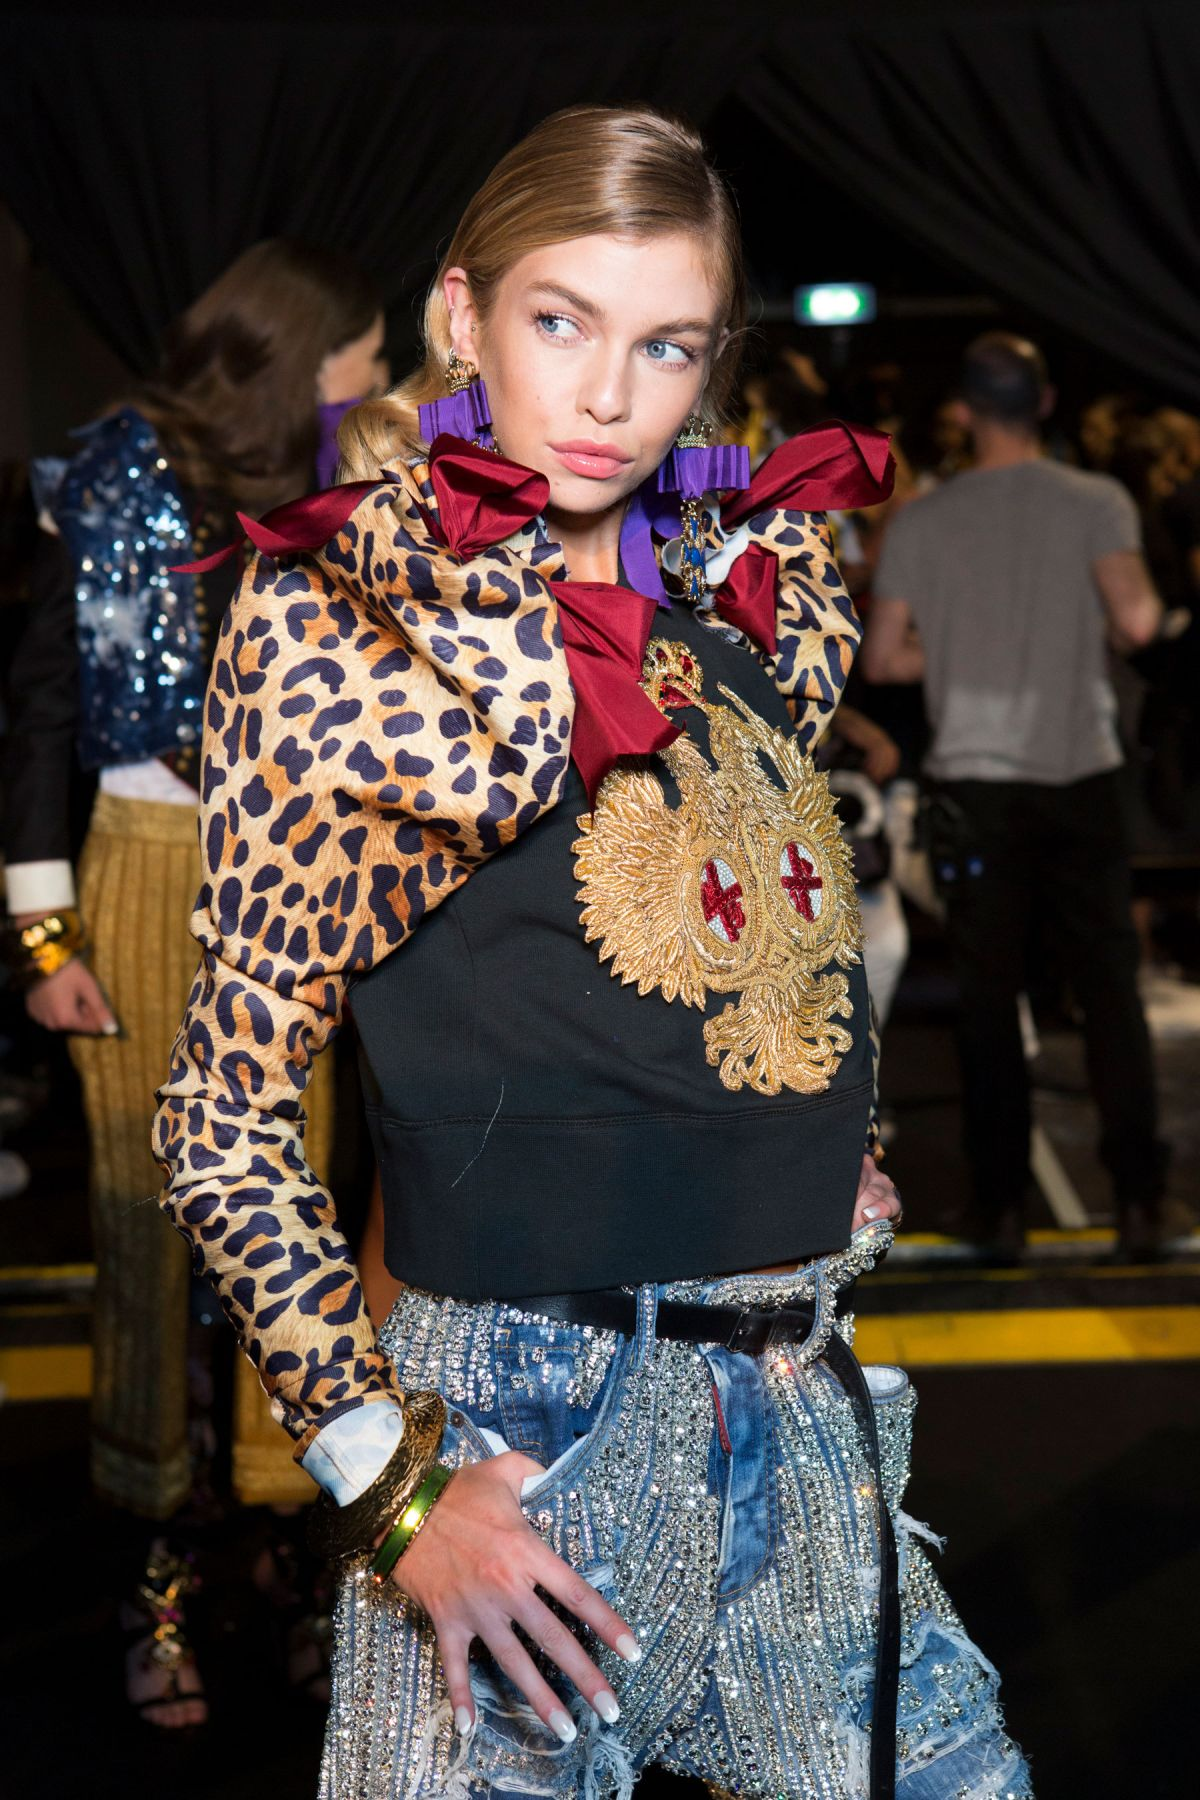 Milan Fashion Week 2017 Street Style 1: STELLA MAXWELL At Dsquared2 Spring/Summer 2017 Fashion